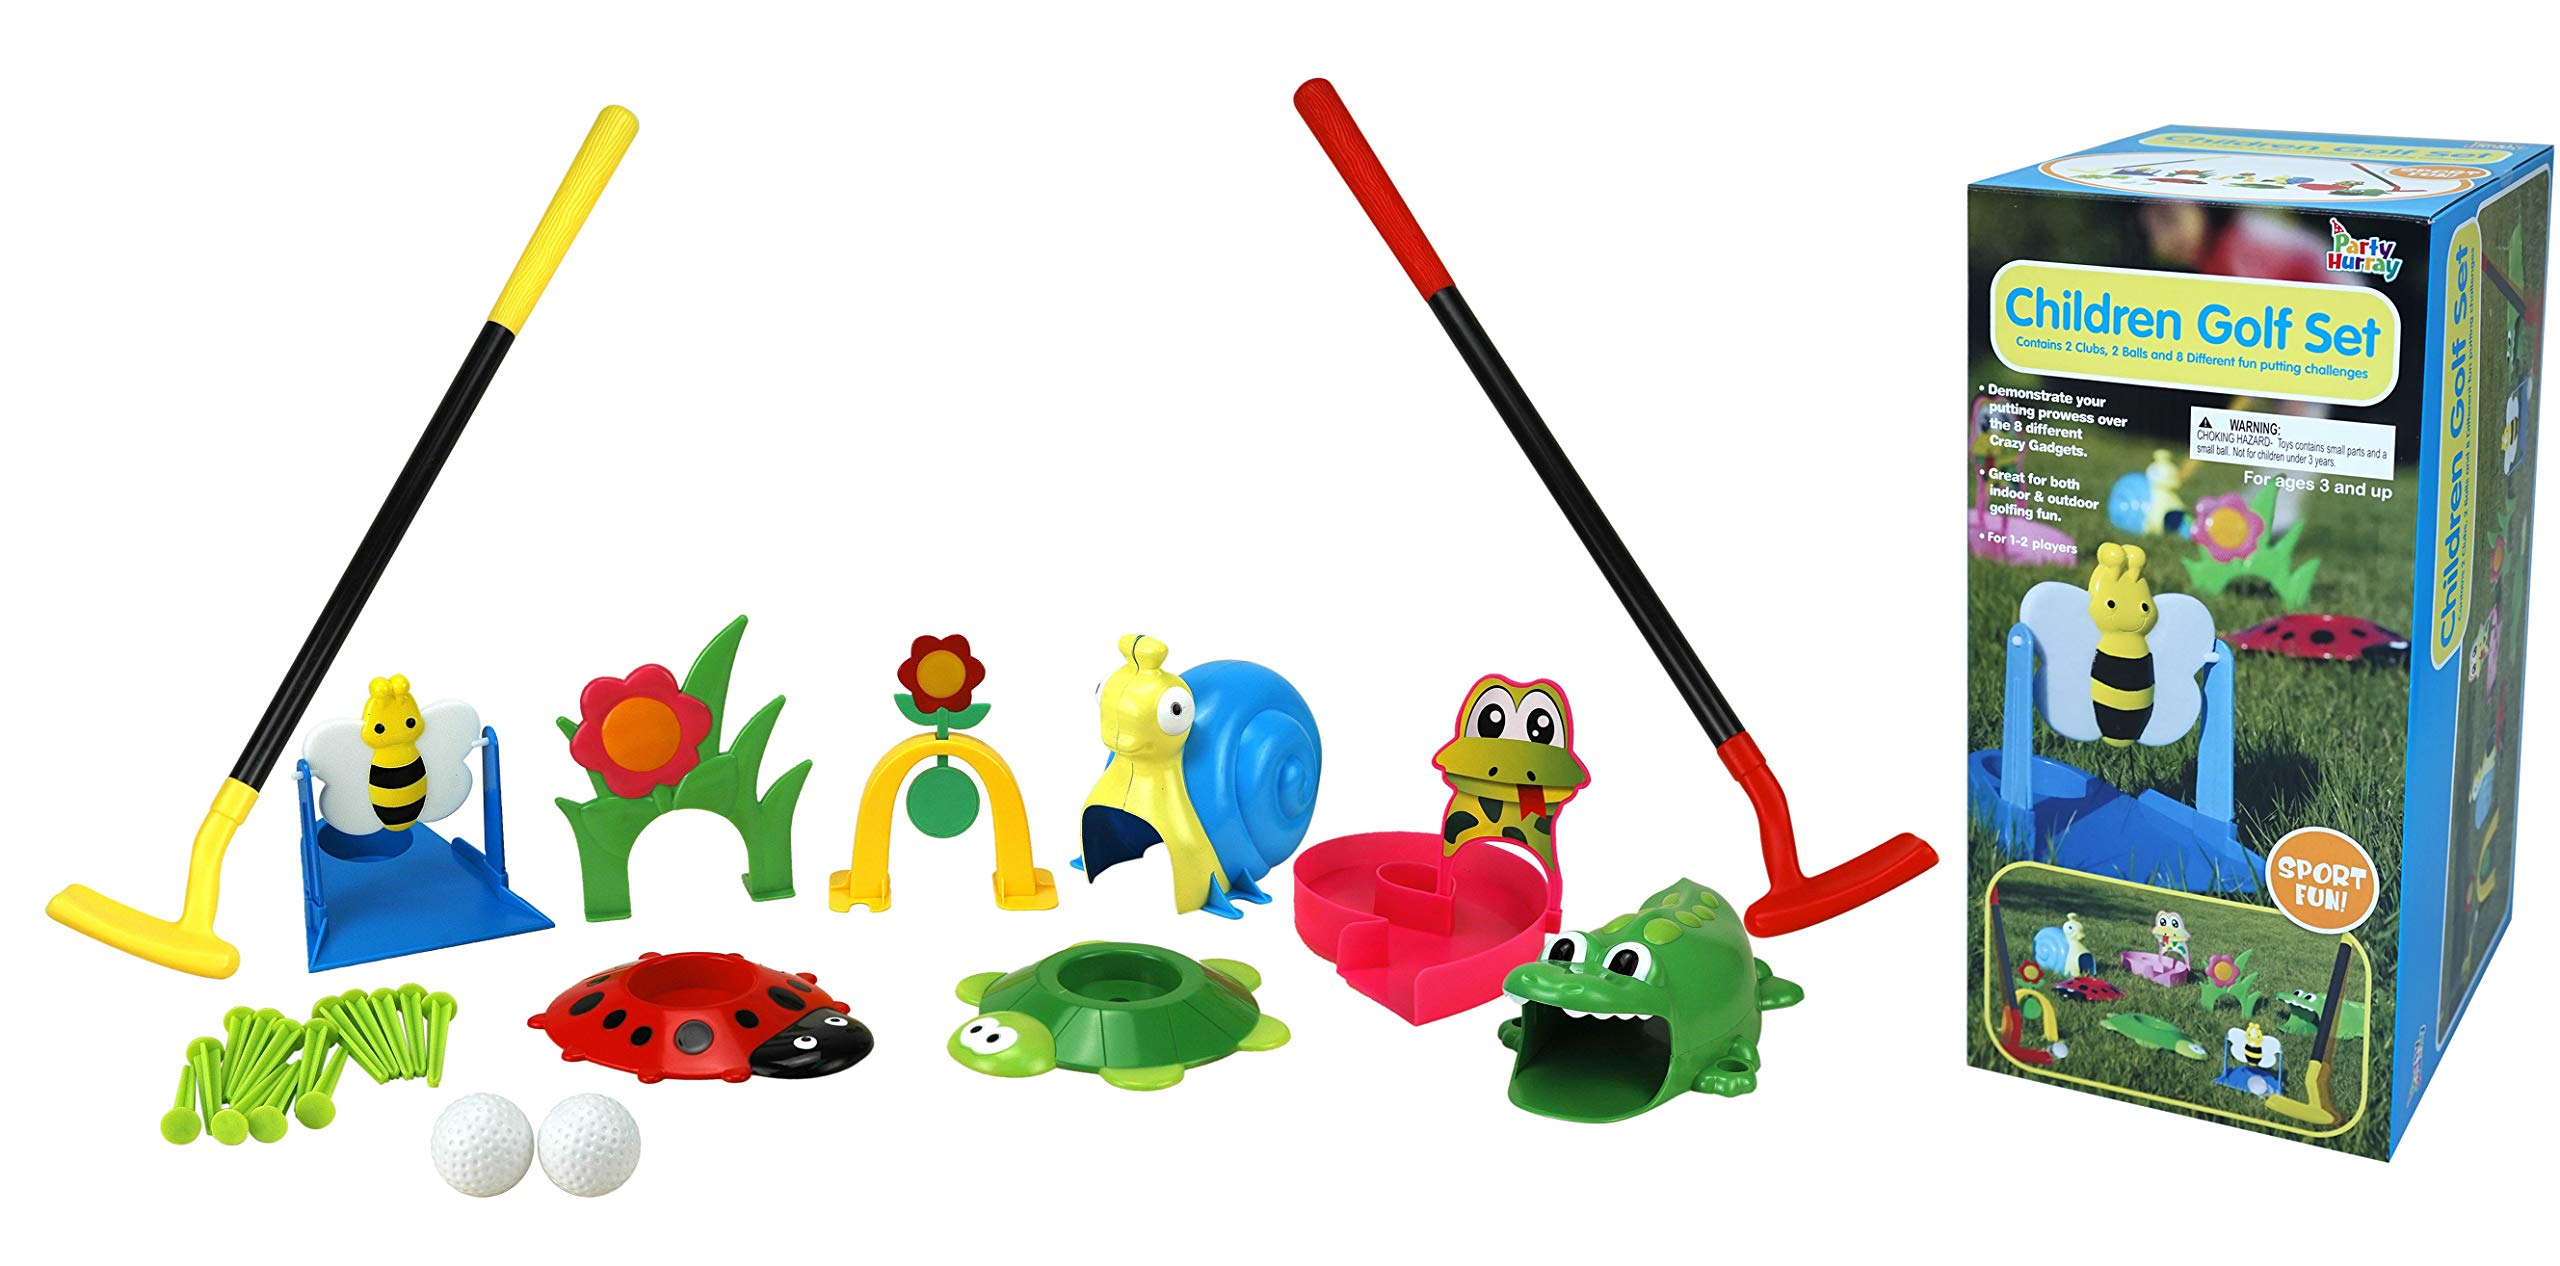 Party Hurray Children Golf Set, w/Golf Clubs, Practice Holes, Floral/Animal Obstacles, Golf Balls by Party Hurray